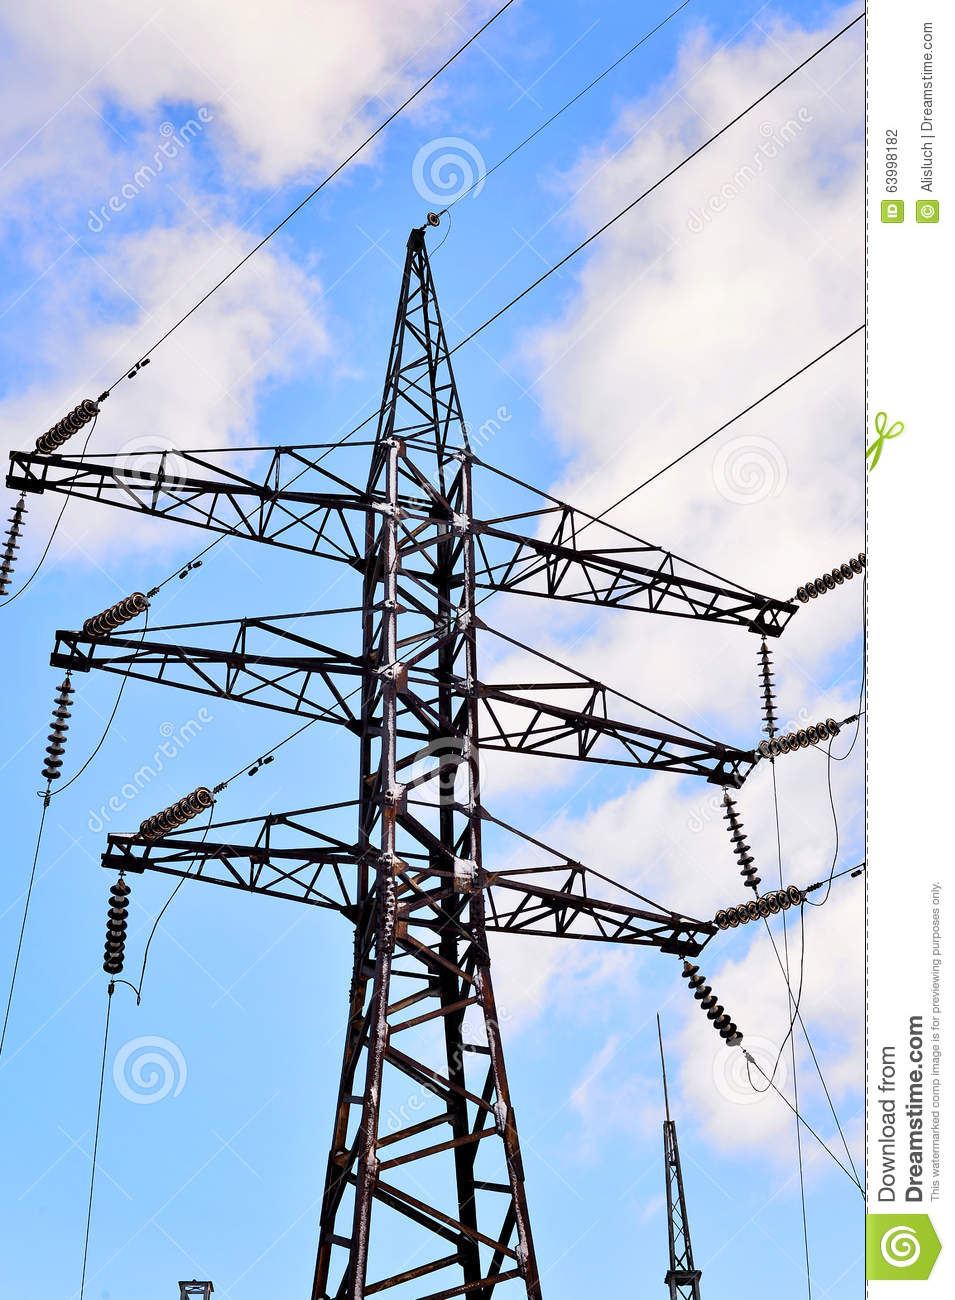 High Voltage Electrical Wire : High voltage electric pole with wires stock photo image